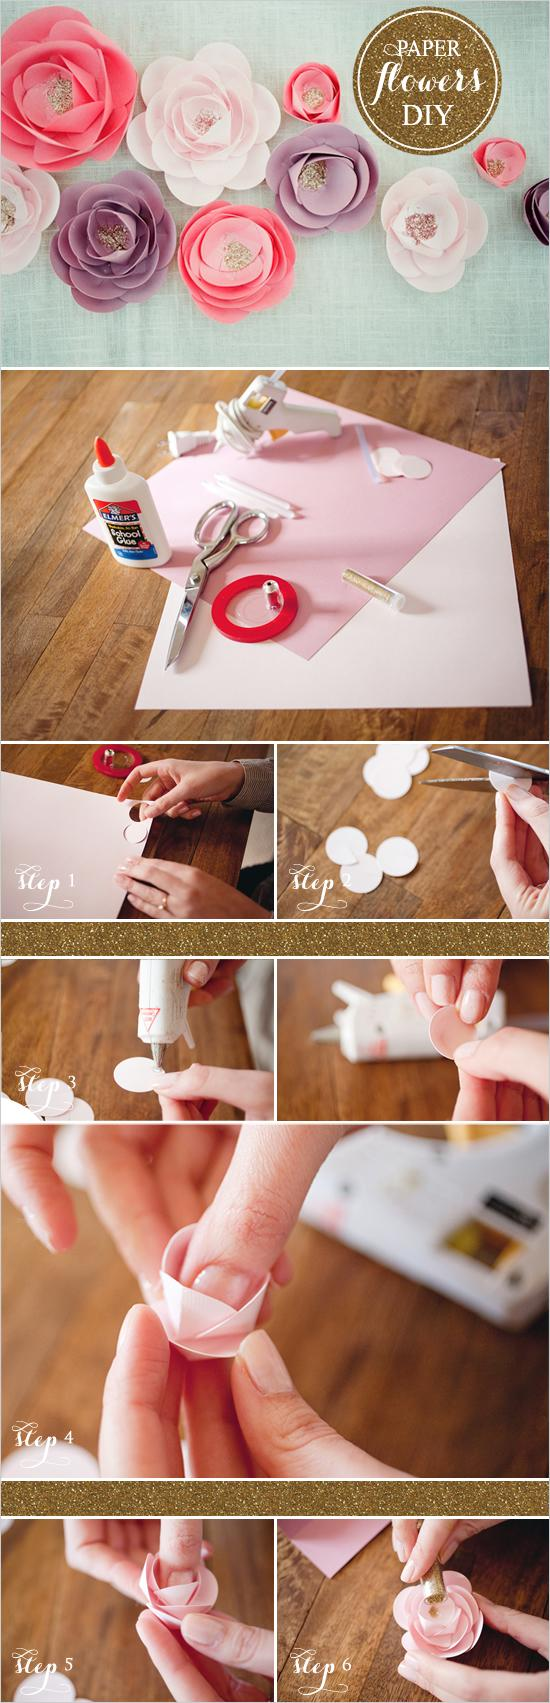 How To Make Home Enchanting With Cute DIY Paper Flowers Image